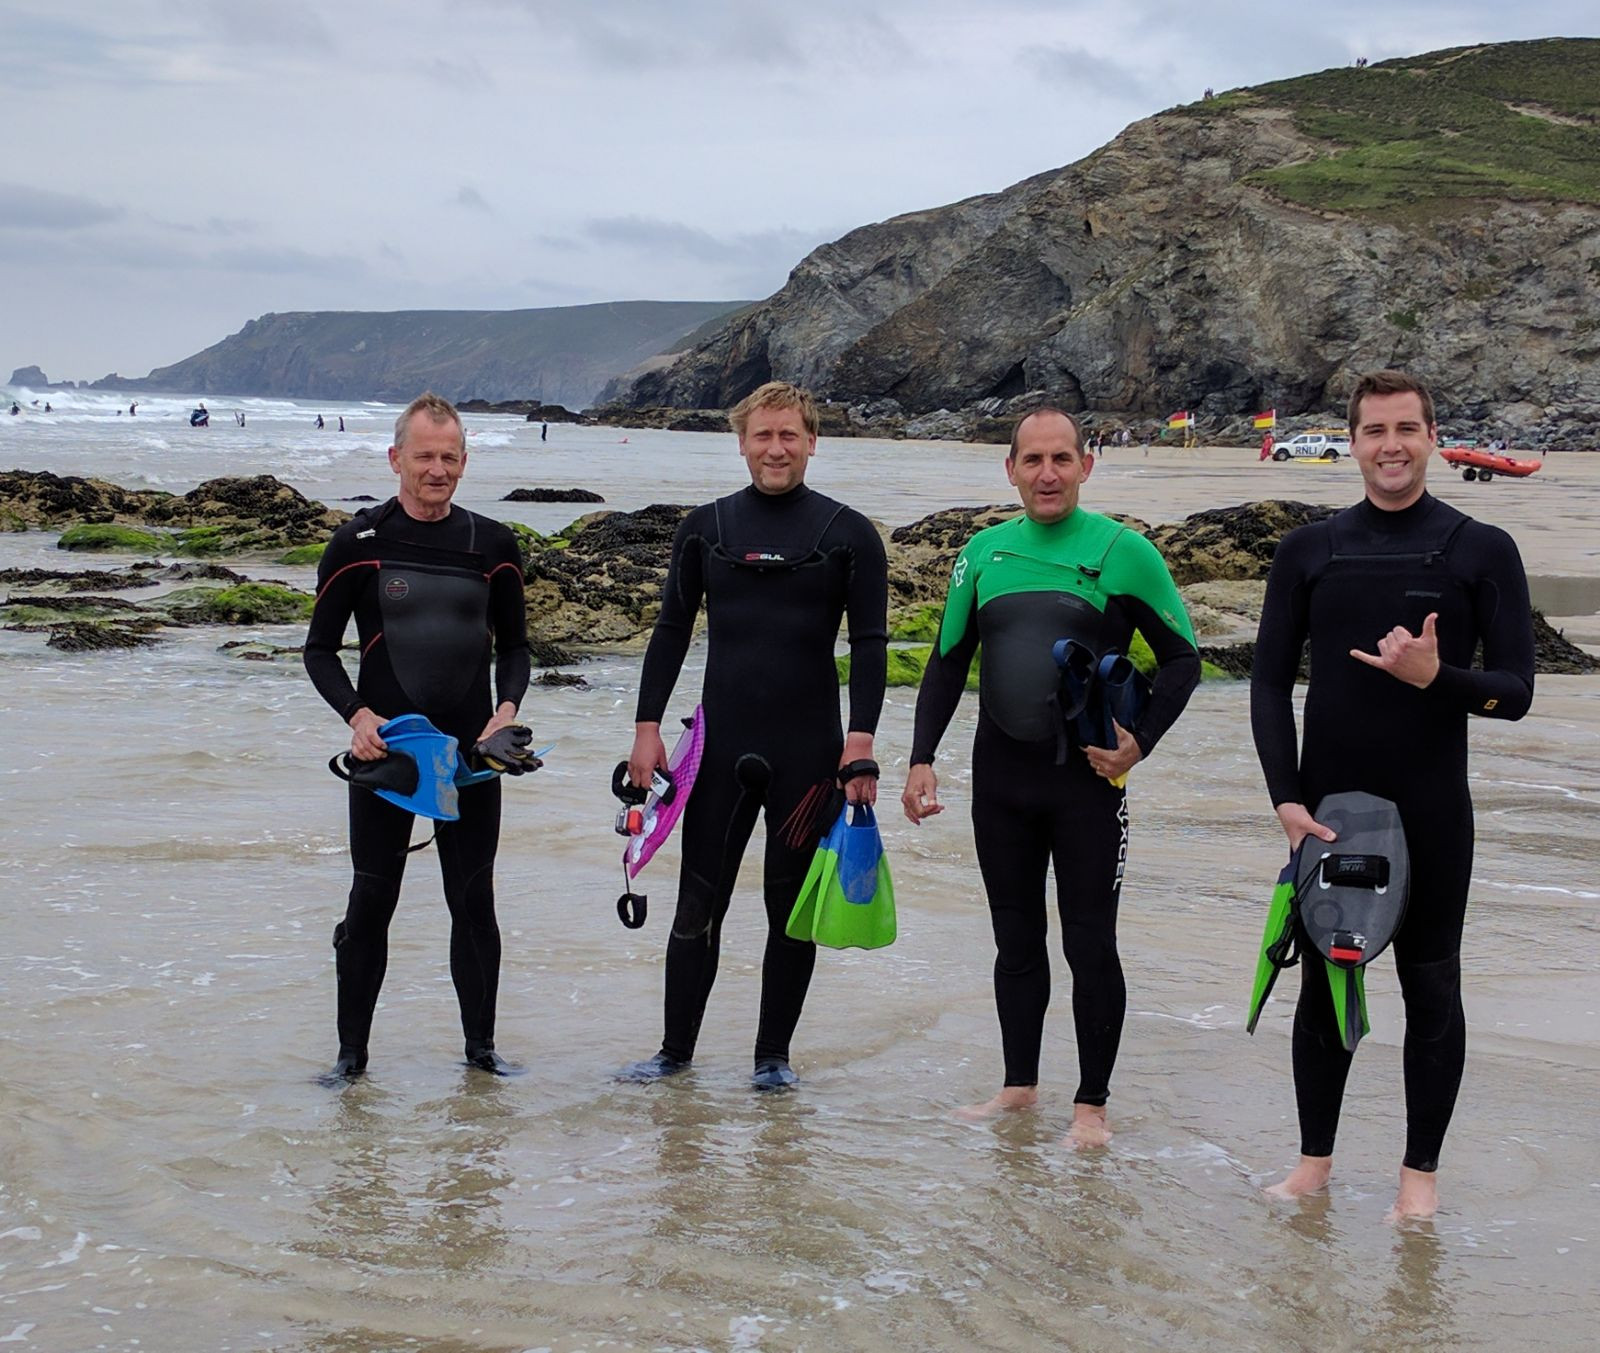 A UK Bodysurfing Association Meet Up